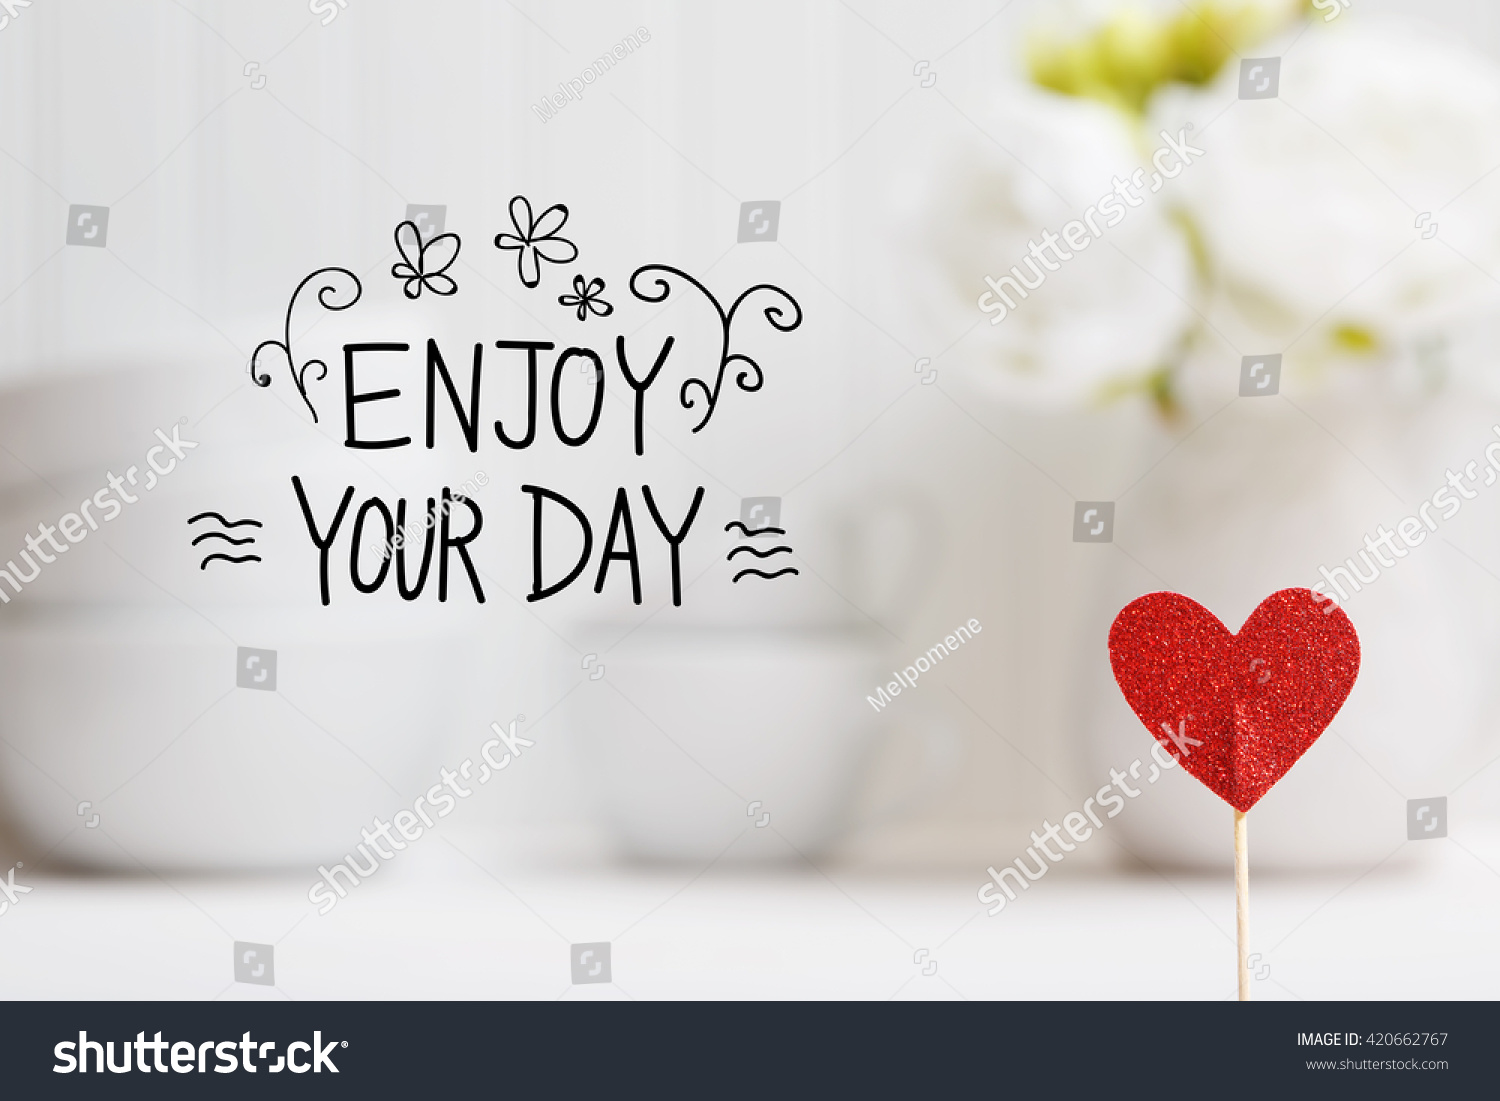 Delicieux Enjoy Your Day Message With Small Red Heart With White Dishes